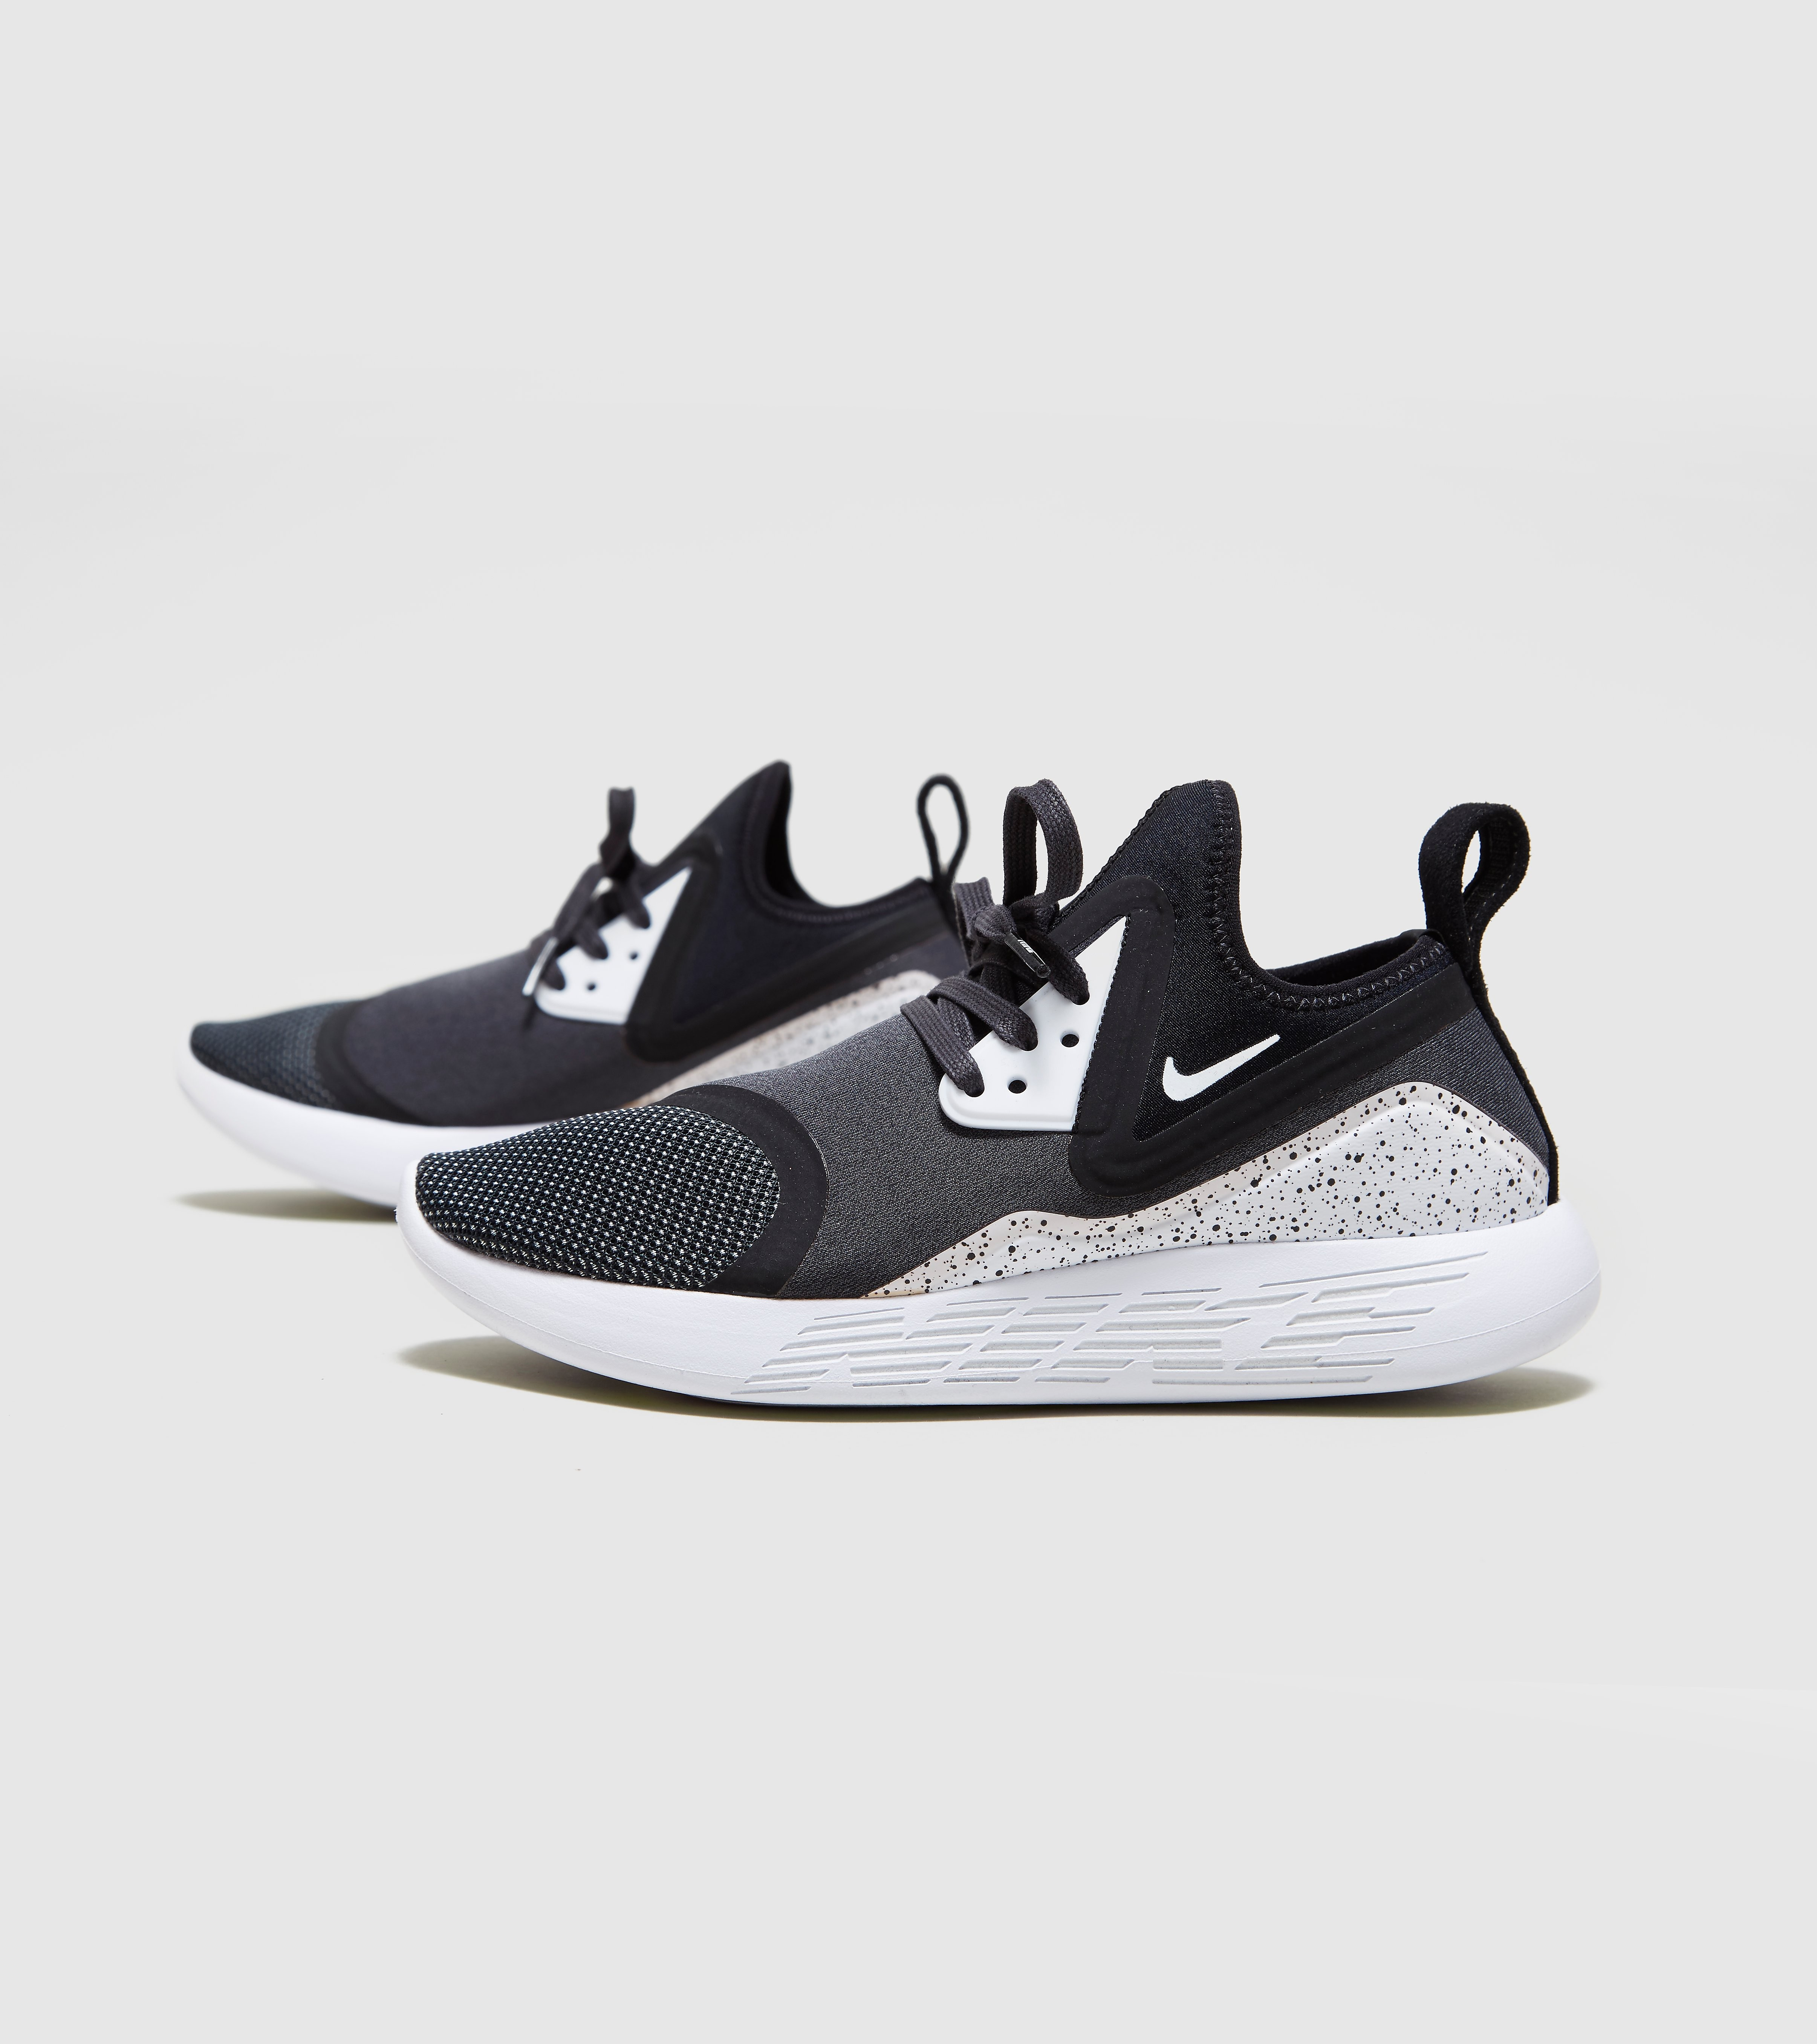 Nike Lunarcharge Women's